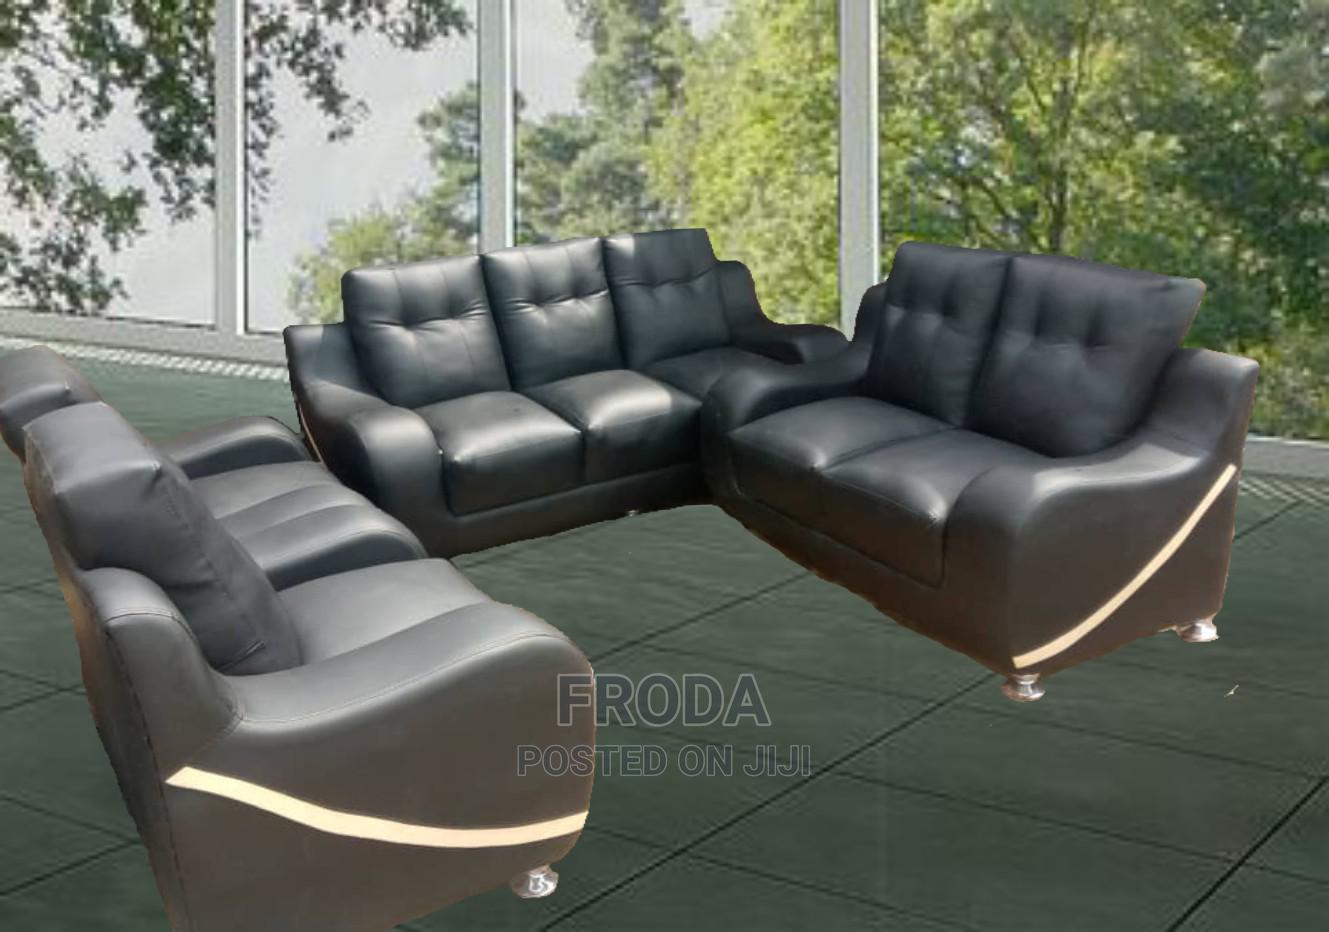 Set of 7 Seaters Sofa Chairs for Living Room. Leather Couch